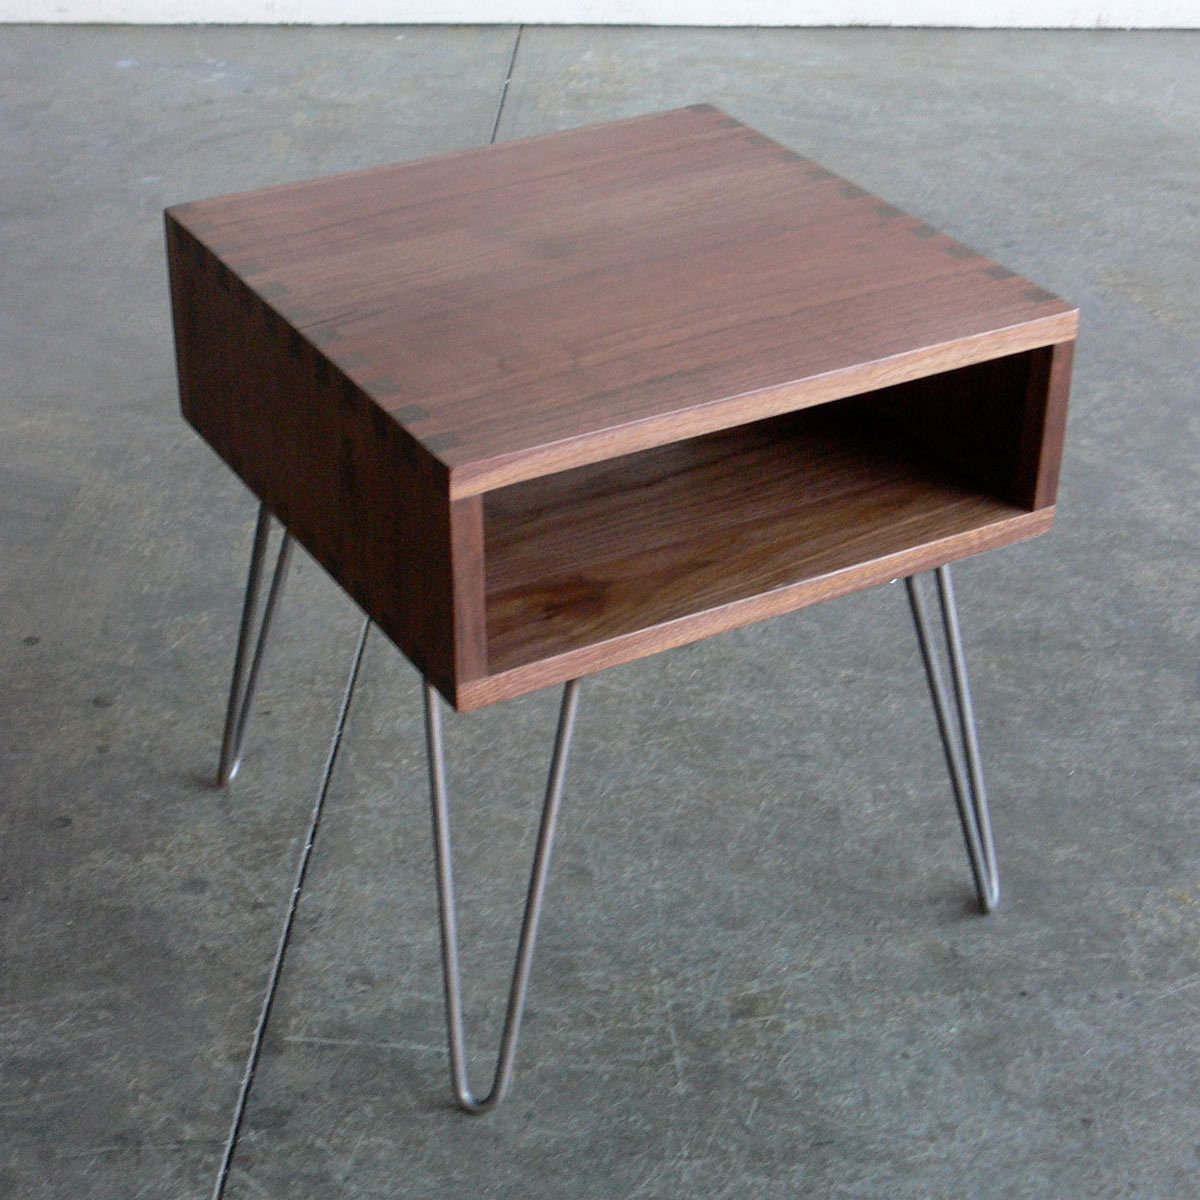 Hairpin Leg Side Table Some Great Woodworking Here But I Think It Could Be Really Simple To Build Coffee And End Tables Side Table Table